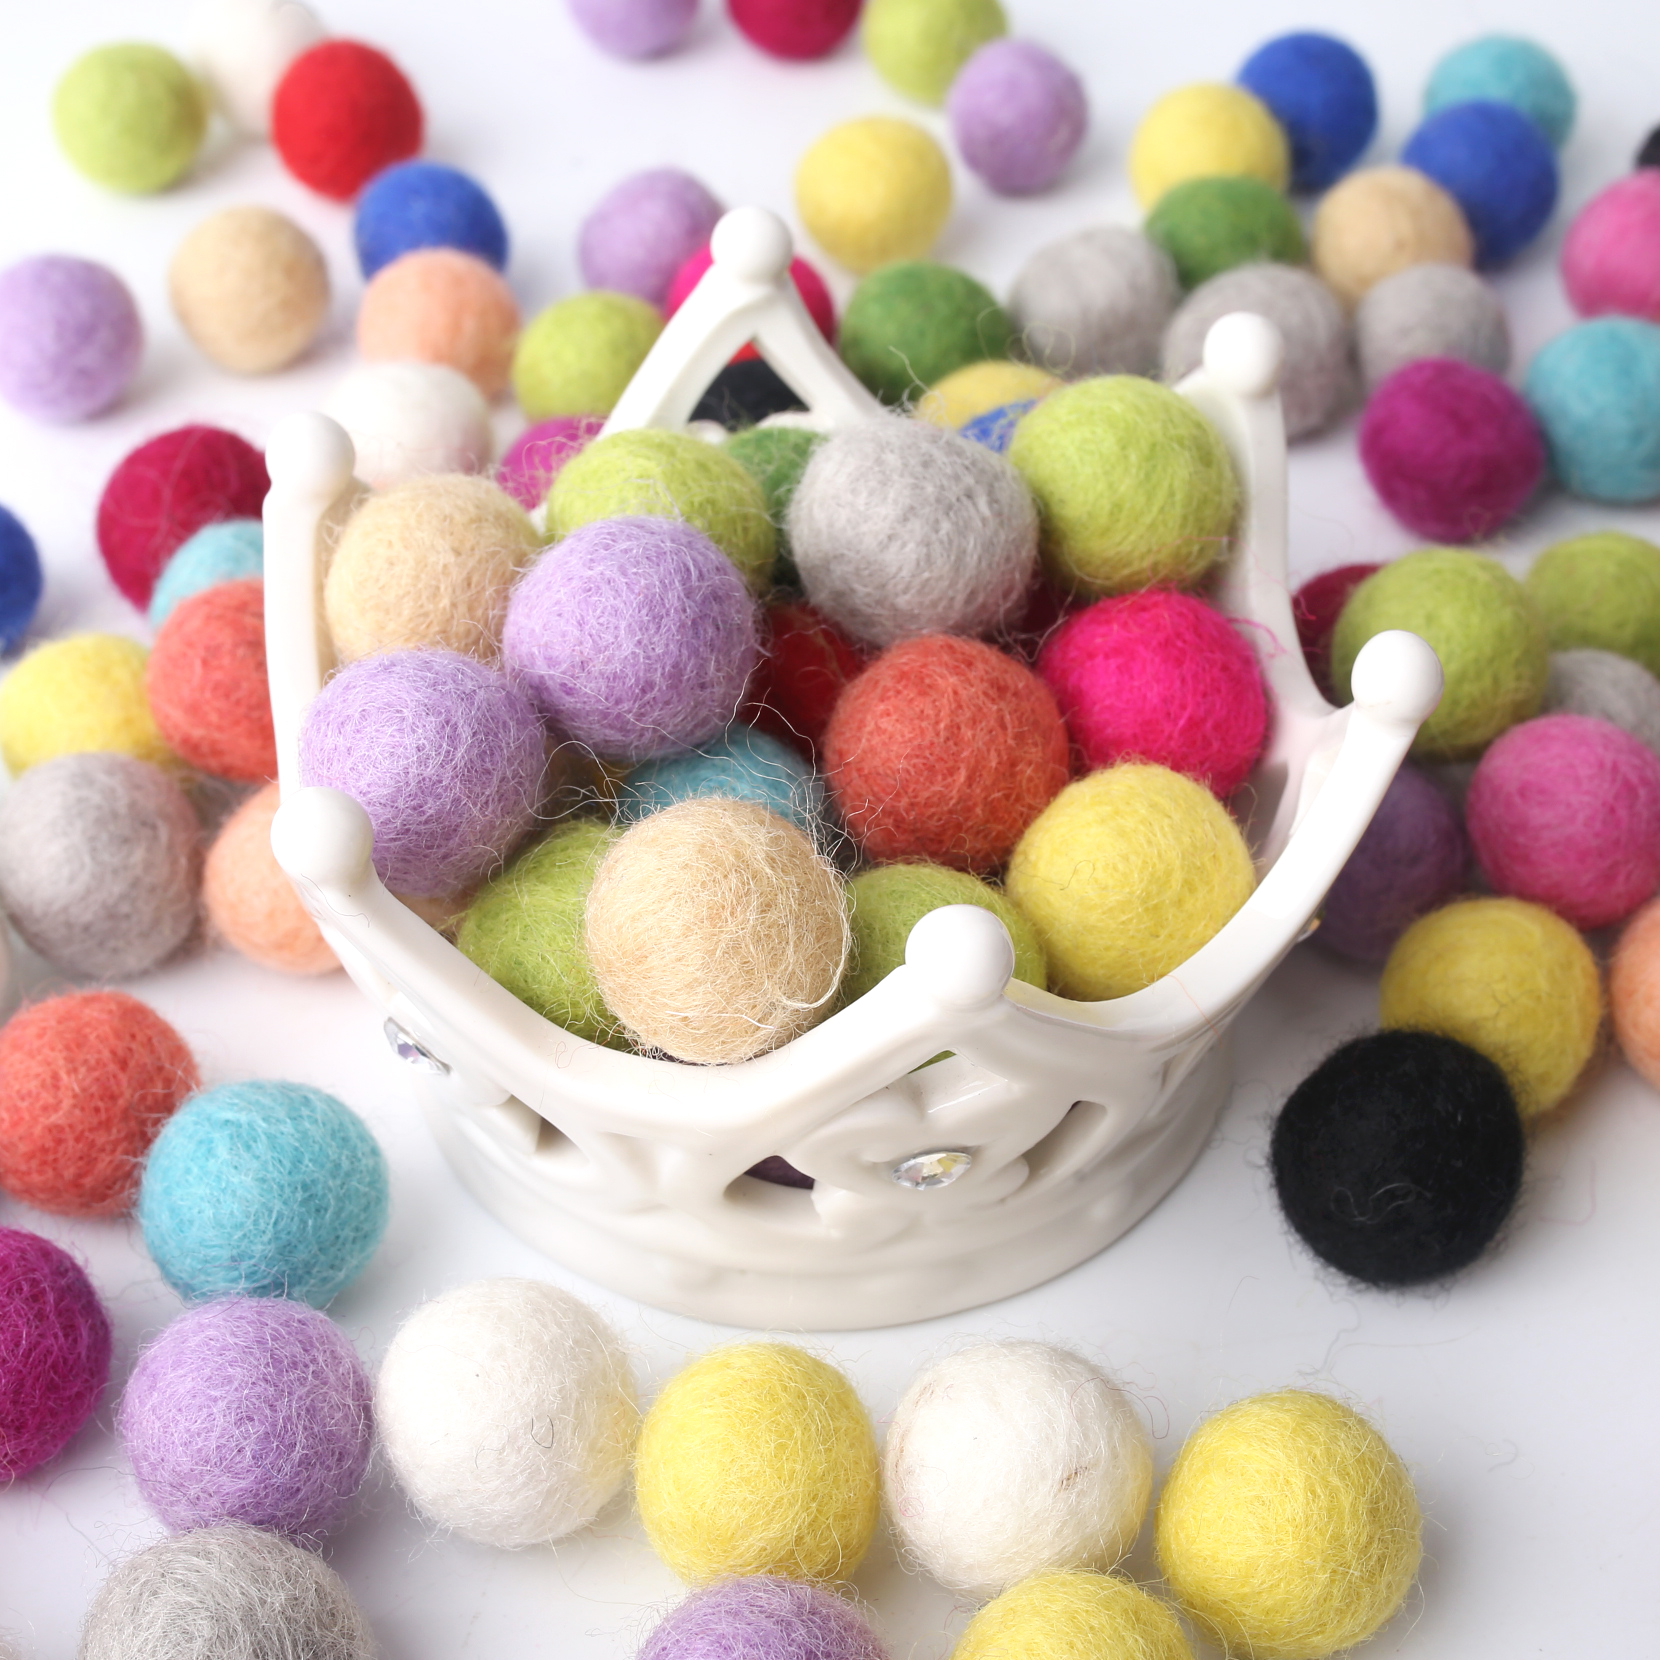 200pc 20mm Wool Felt Ball Round Wool Pom Poms Christmas Gift  Room Party Decoration Home Decor Children'S Goods Toys Nurse Gifts